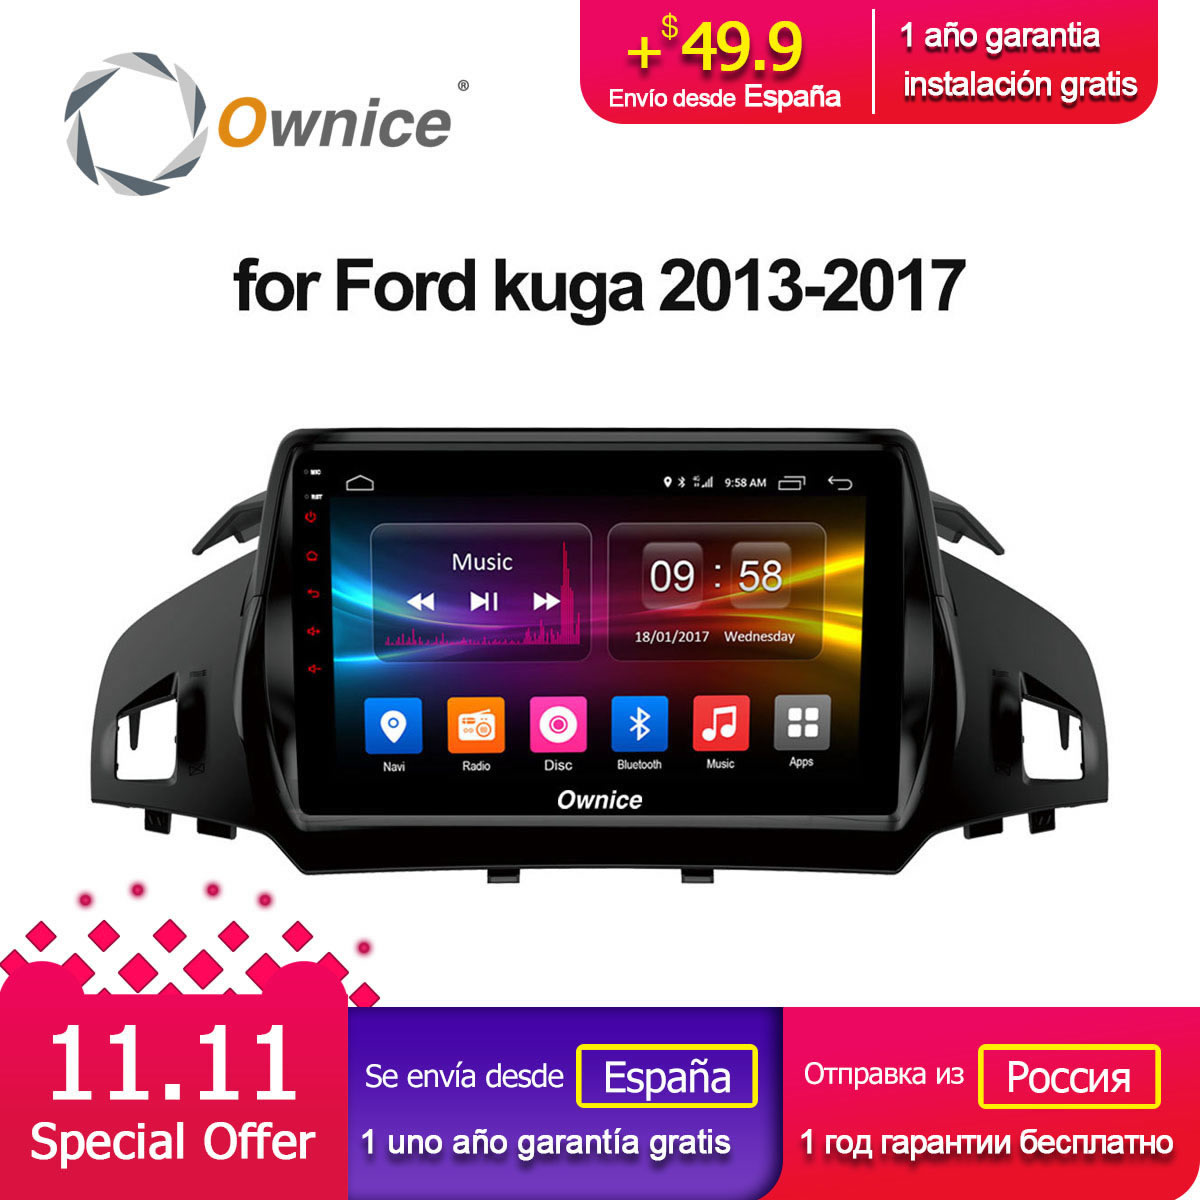 Ownice C500+ G10 Android 8.1 Octa Core CAR Radio dvd player FOR FORD KUGA 2013 2014 2015 2016 2017 GPS 4G LTE 2GB+32GB carplay ownice c500 octa core 10 1 android gps car radio multimedia player 2g 32g for skoda octavia 2014 2015 2016 2017 dvd 4g lte pc